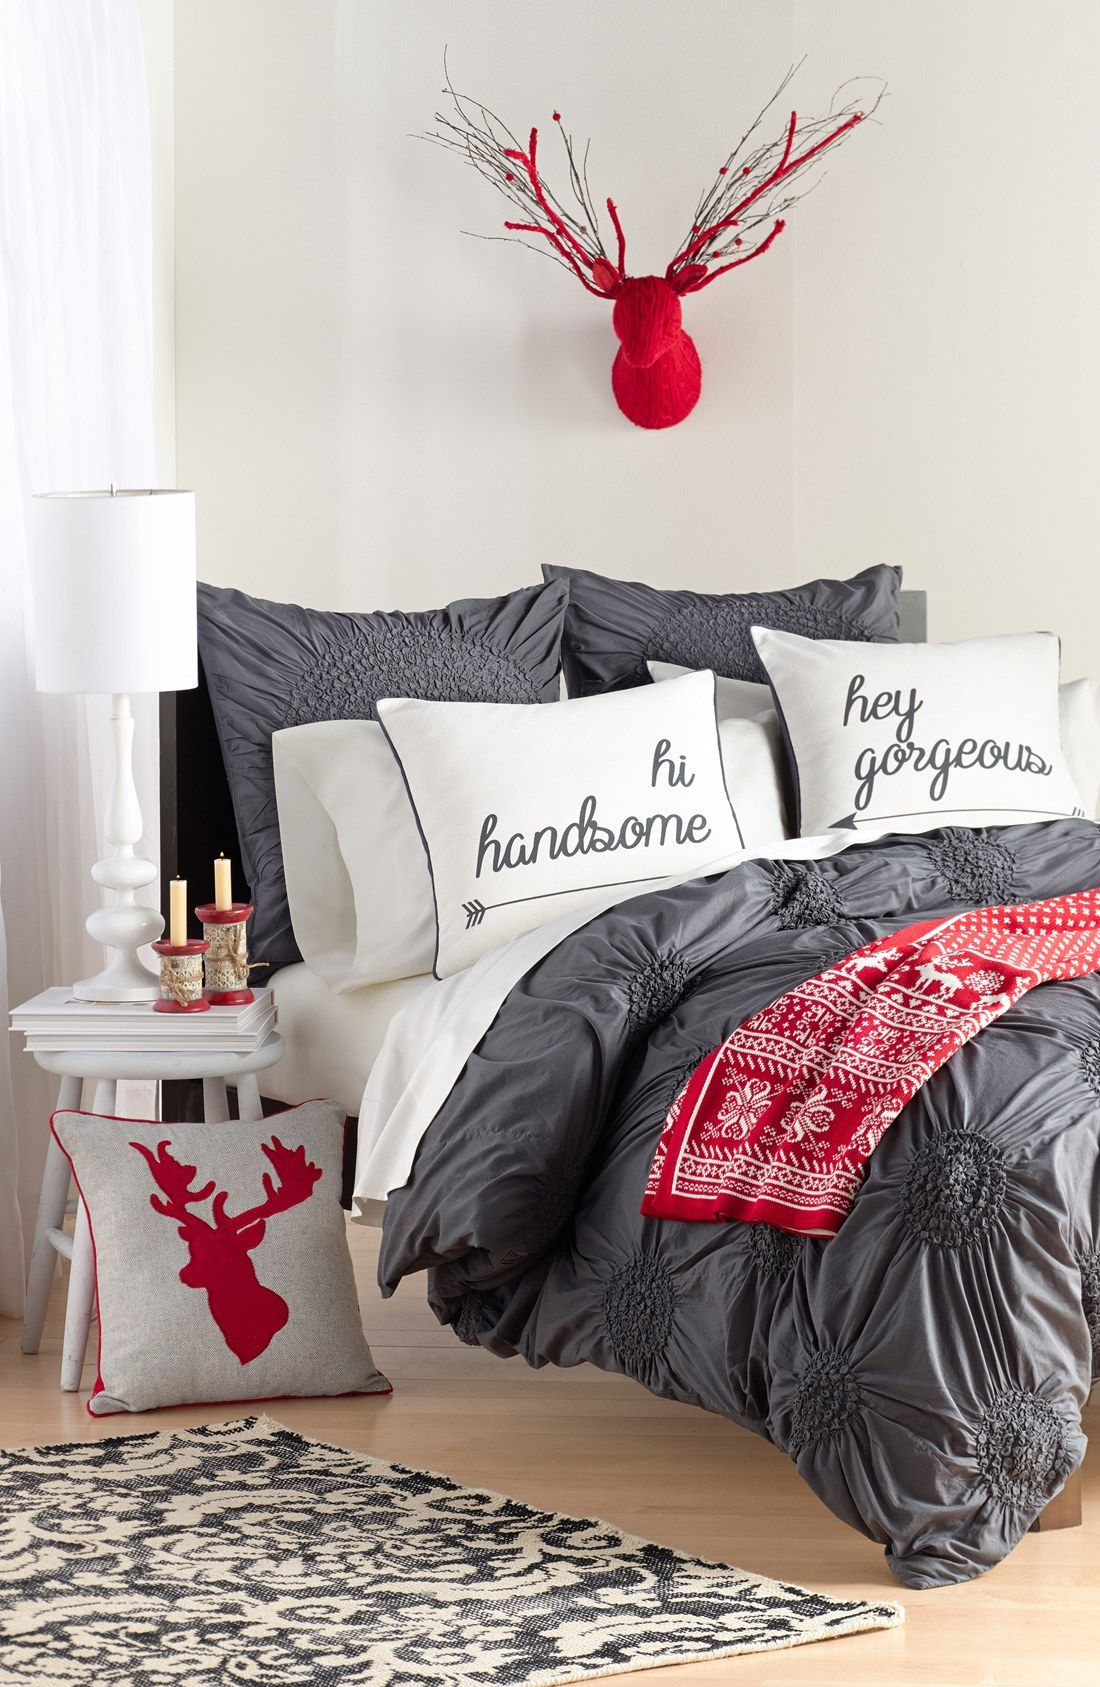 Red, white and gray bedroom set. So cute for the holidays